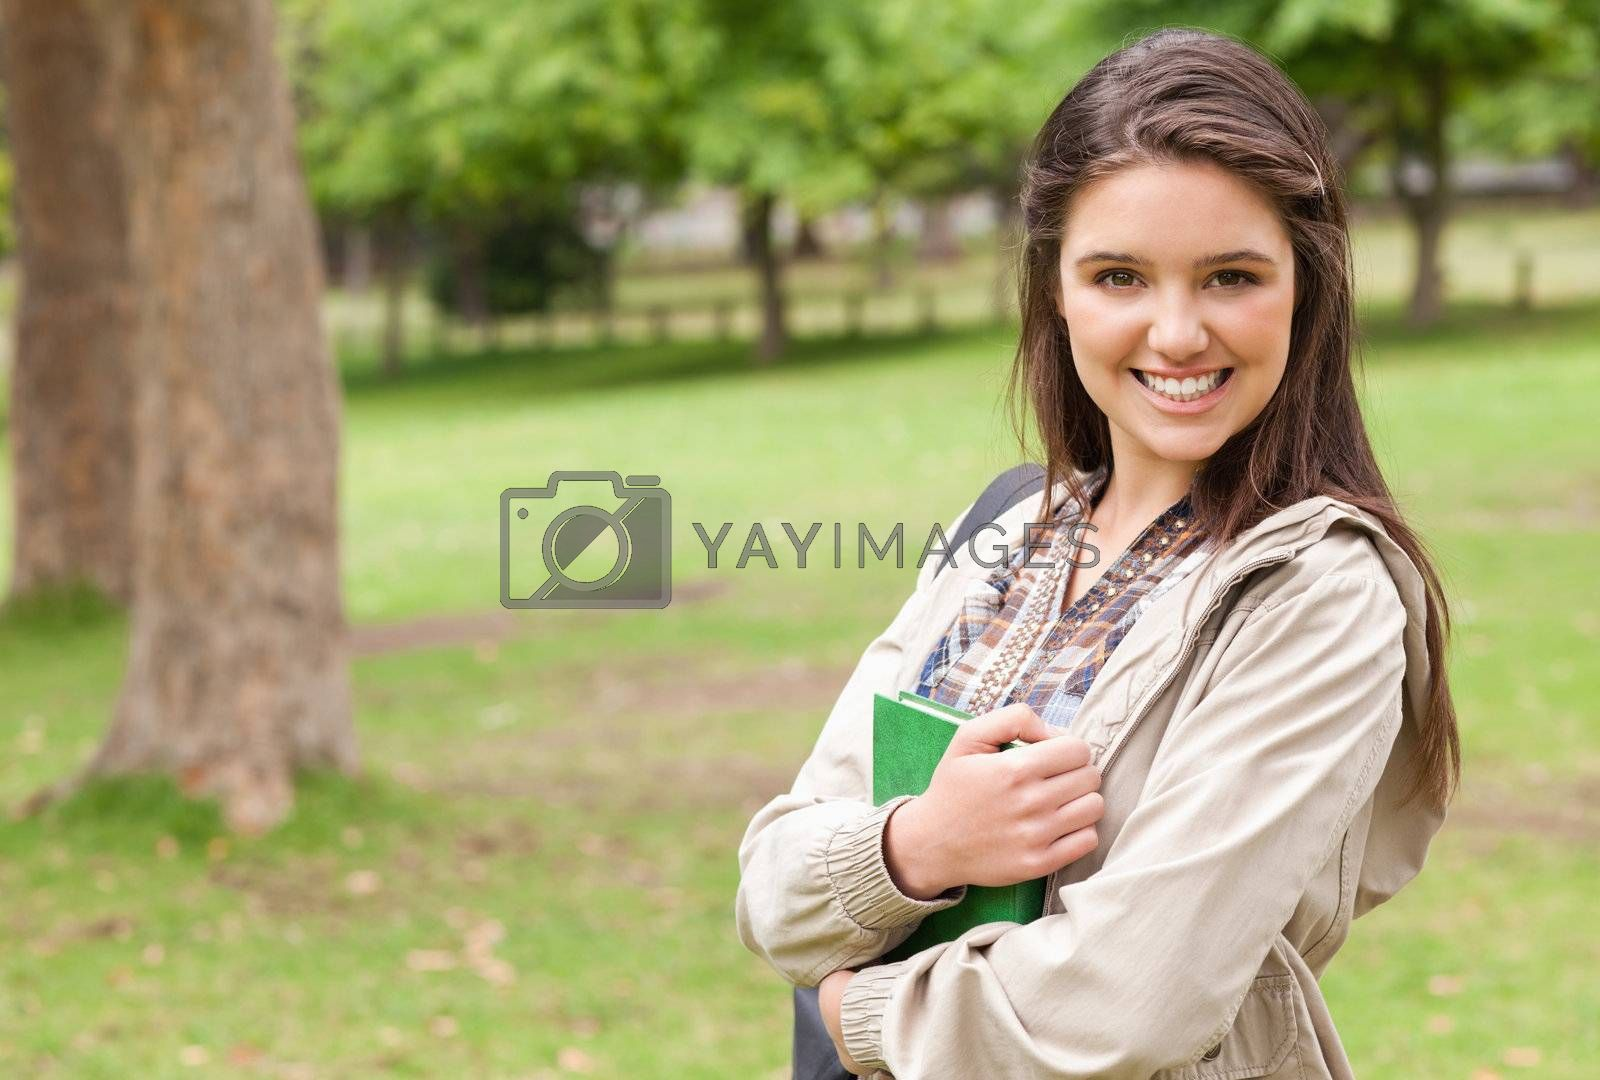 Portrait of a young student holding textbook while posing in a park